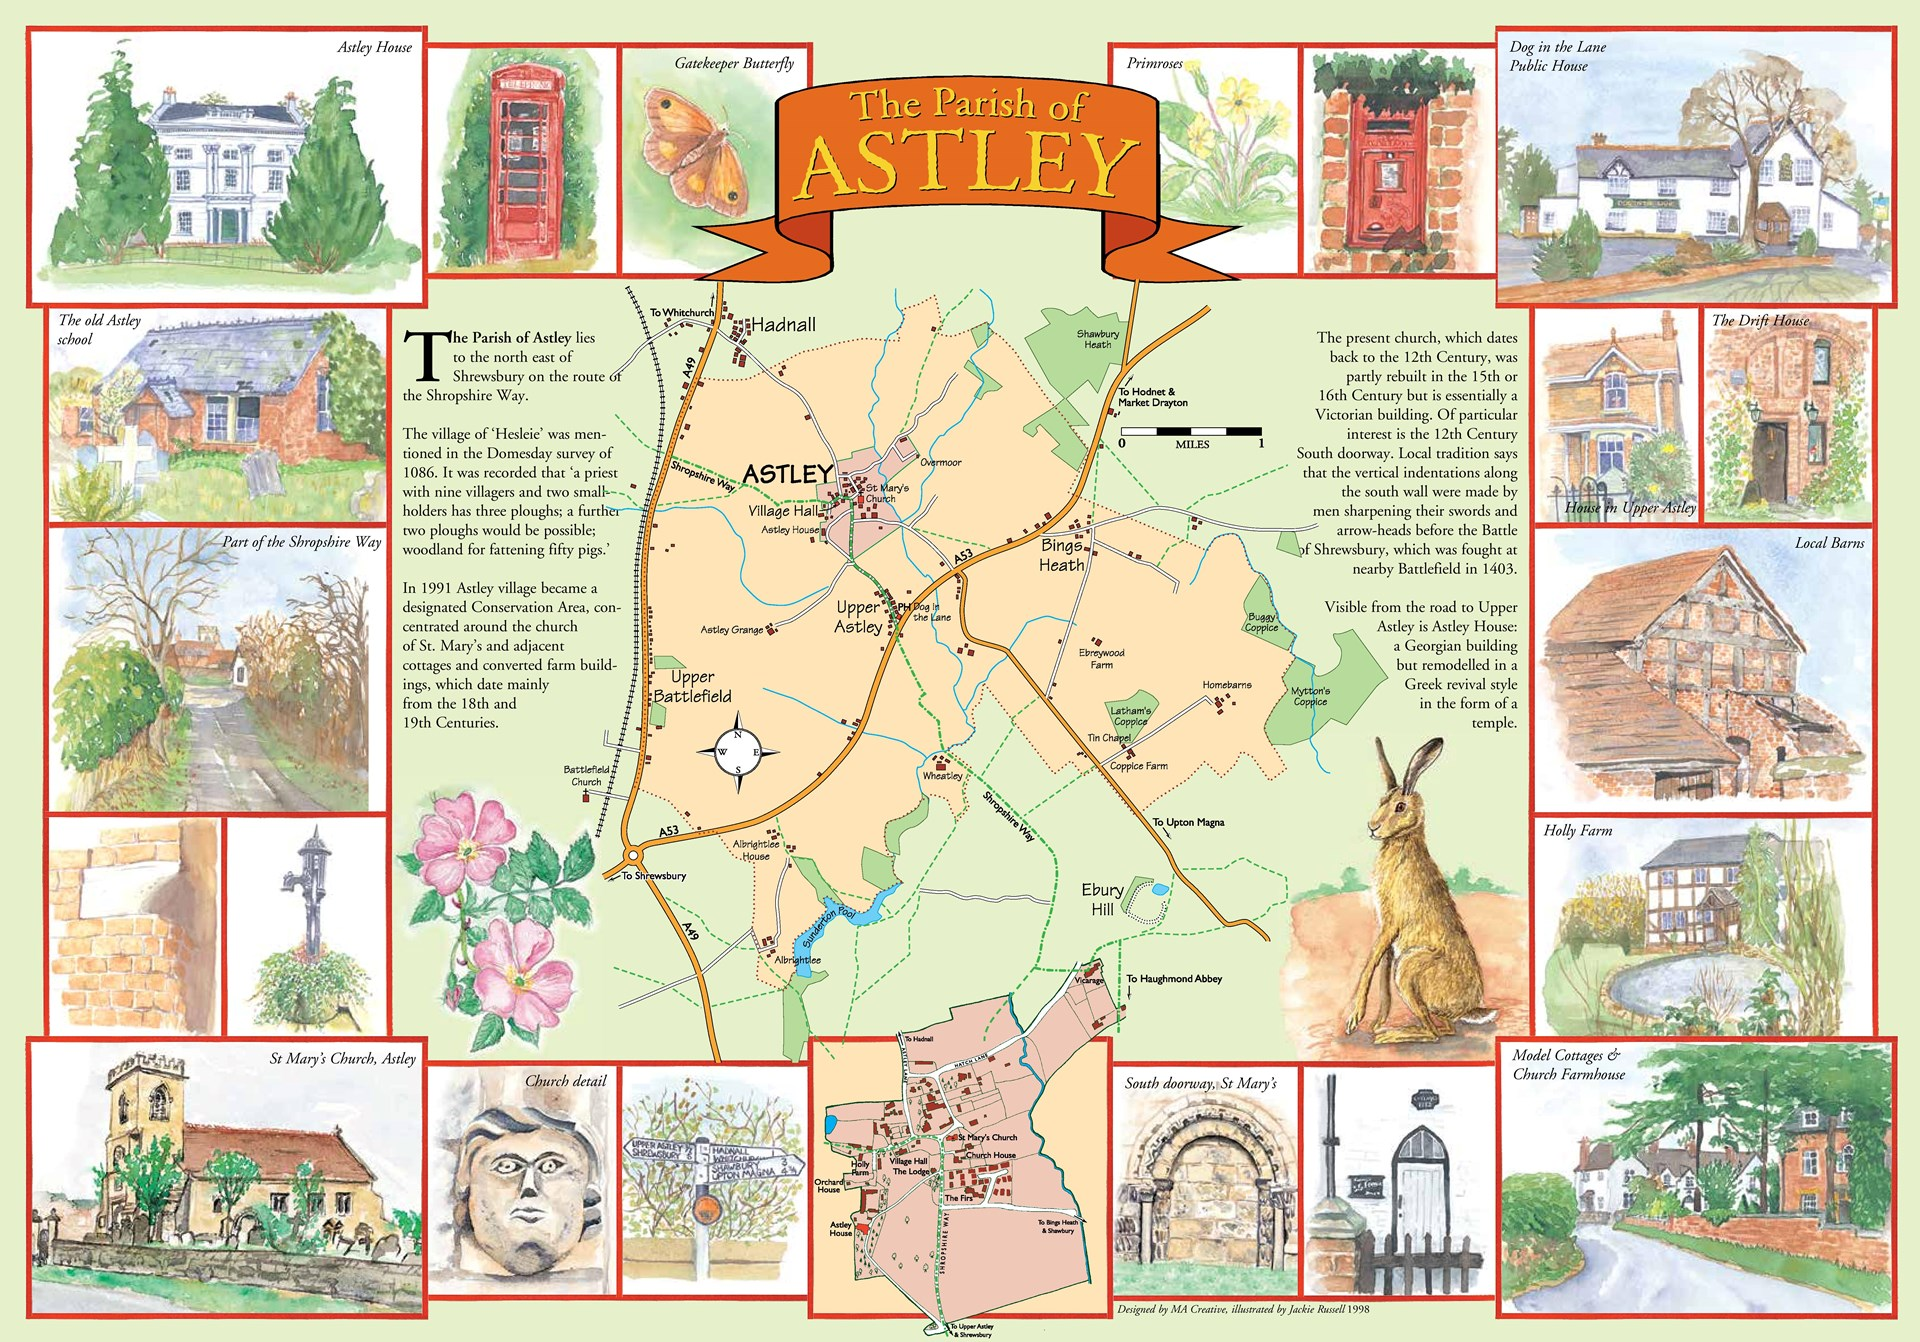 Illustrated map of Astley Parish